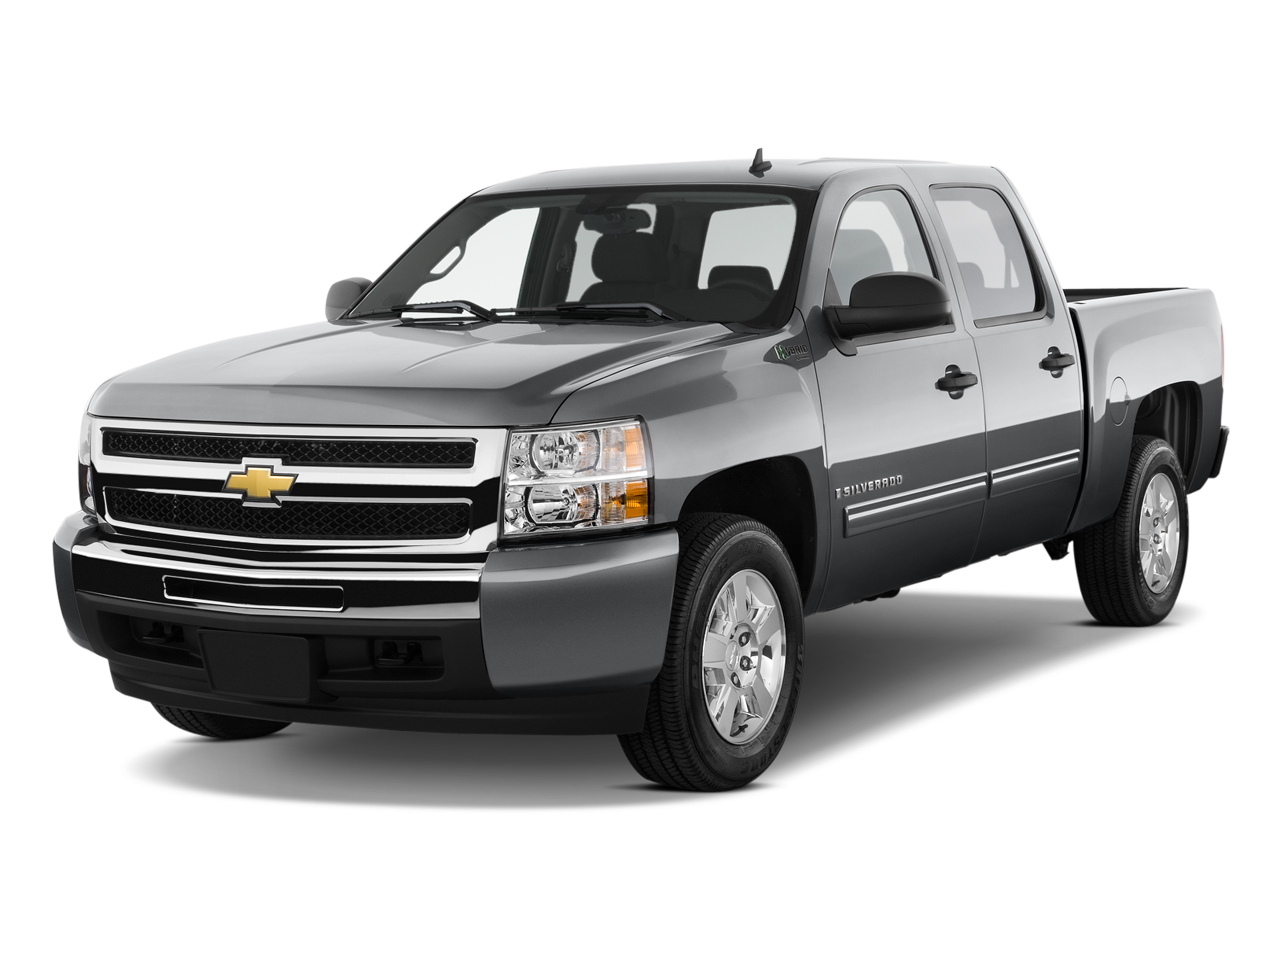 2011 chevrolet silverado 1500 chevy review ratings specs prices and photos the car. Black Bedroom Furniture Sets. Home Design Ideas